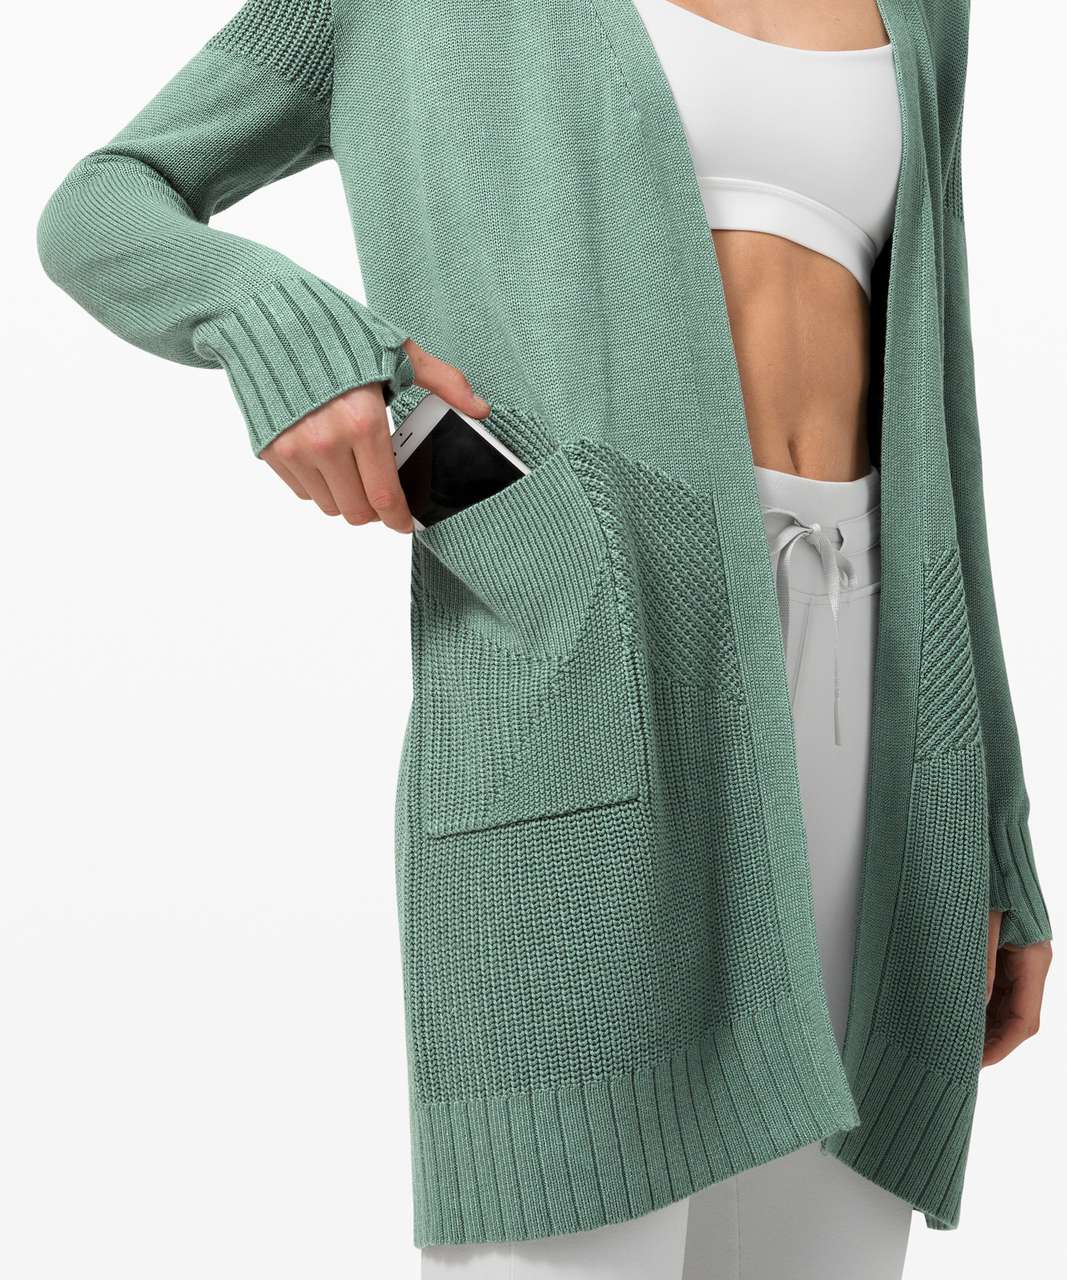 Lululemon Sincerely Yours Wrap Sweater - Tidewater Teal